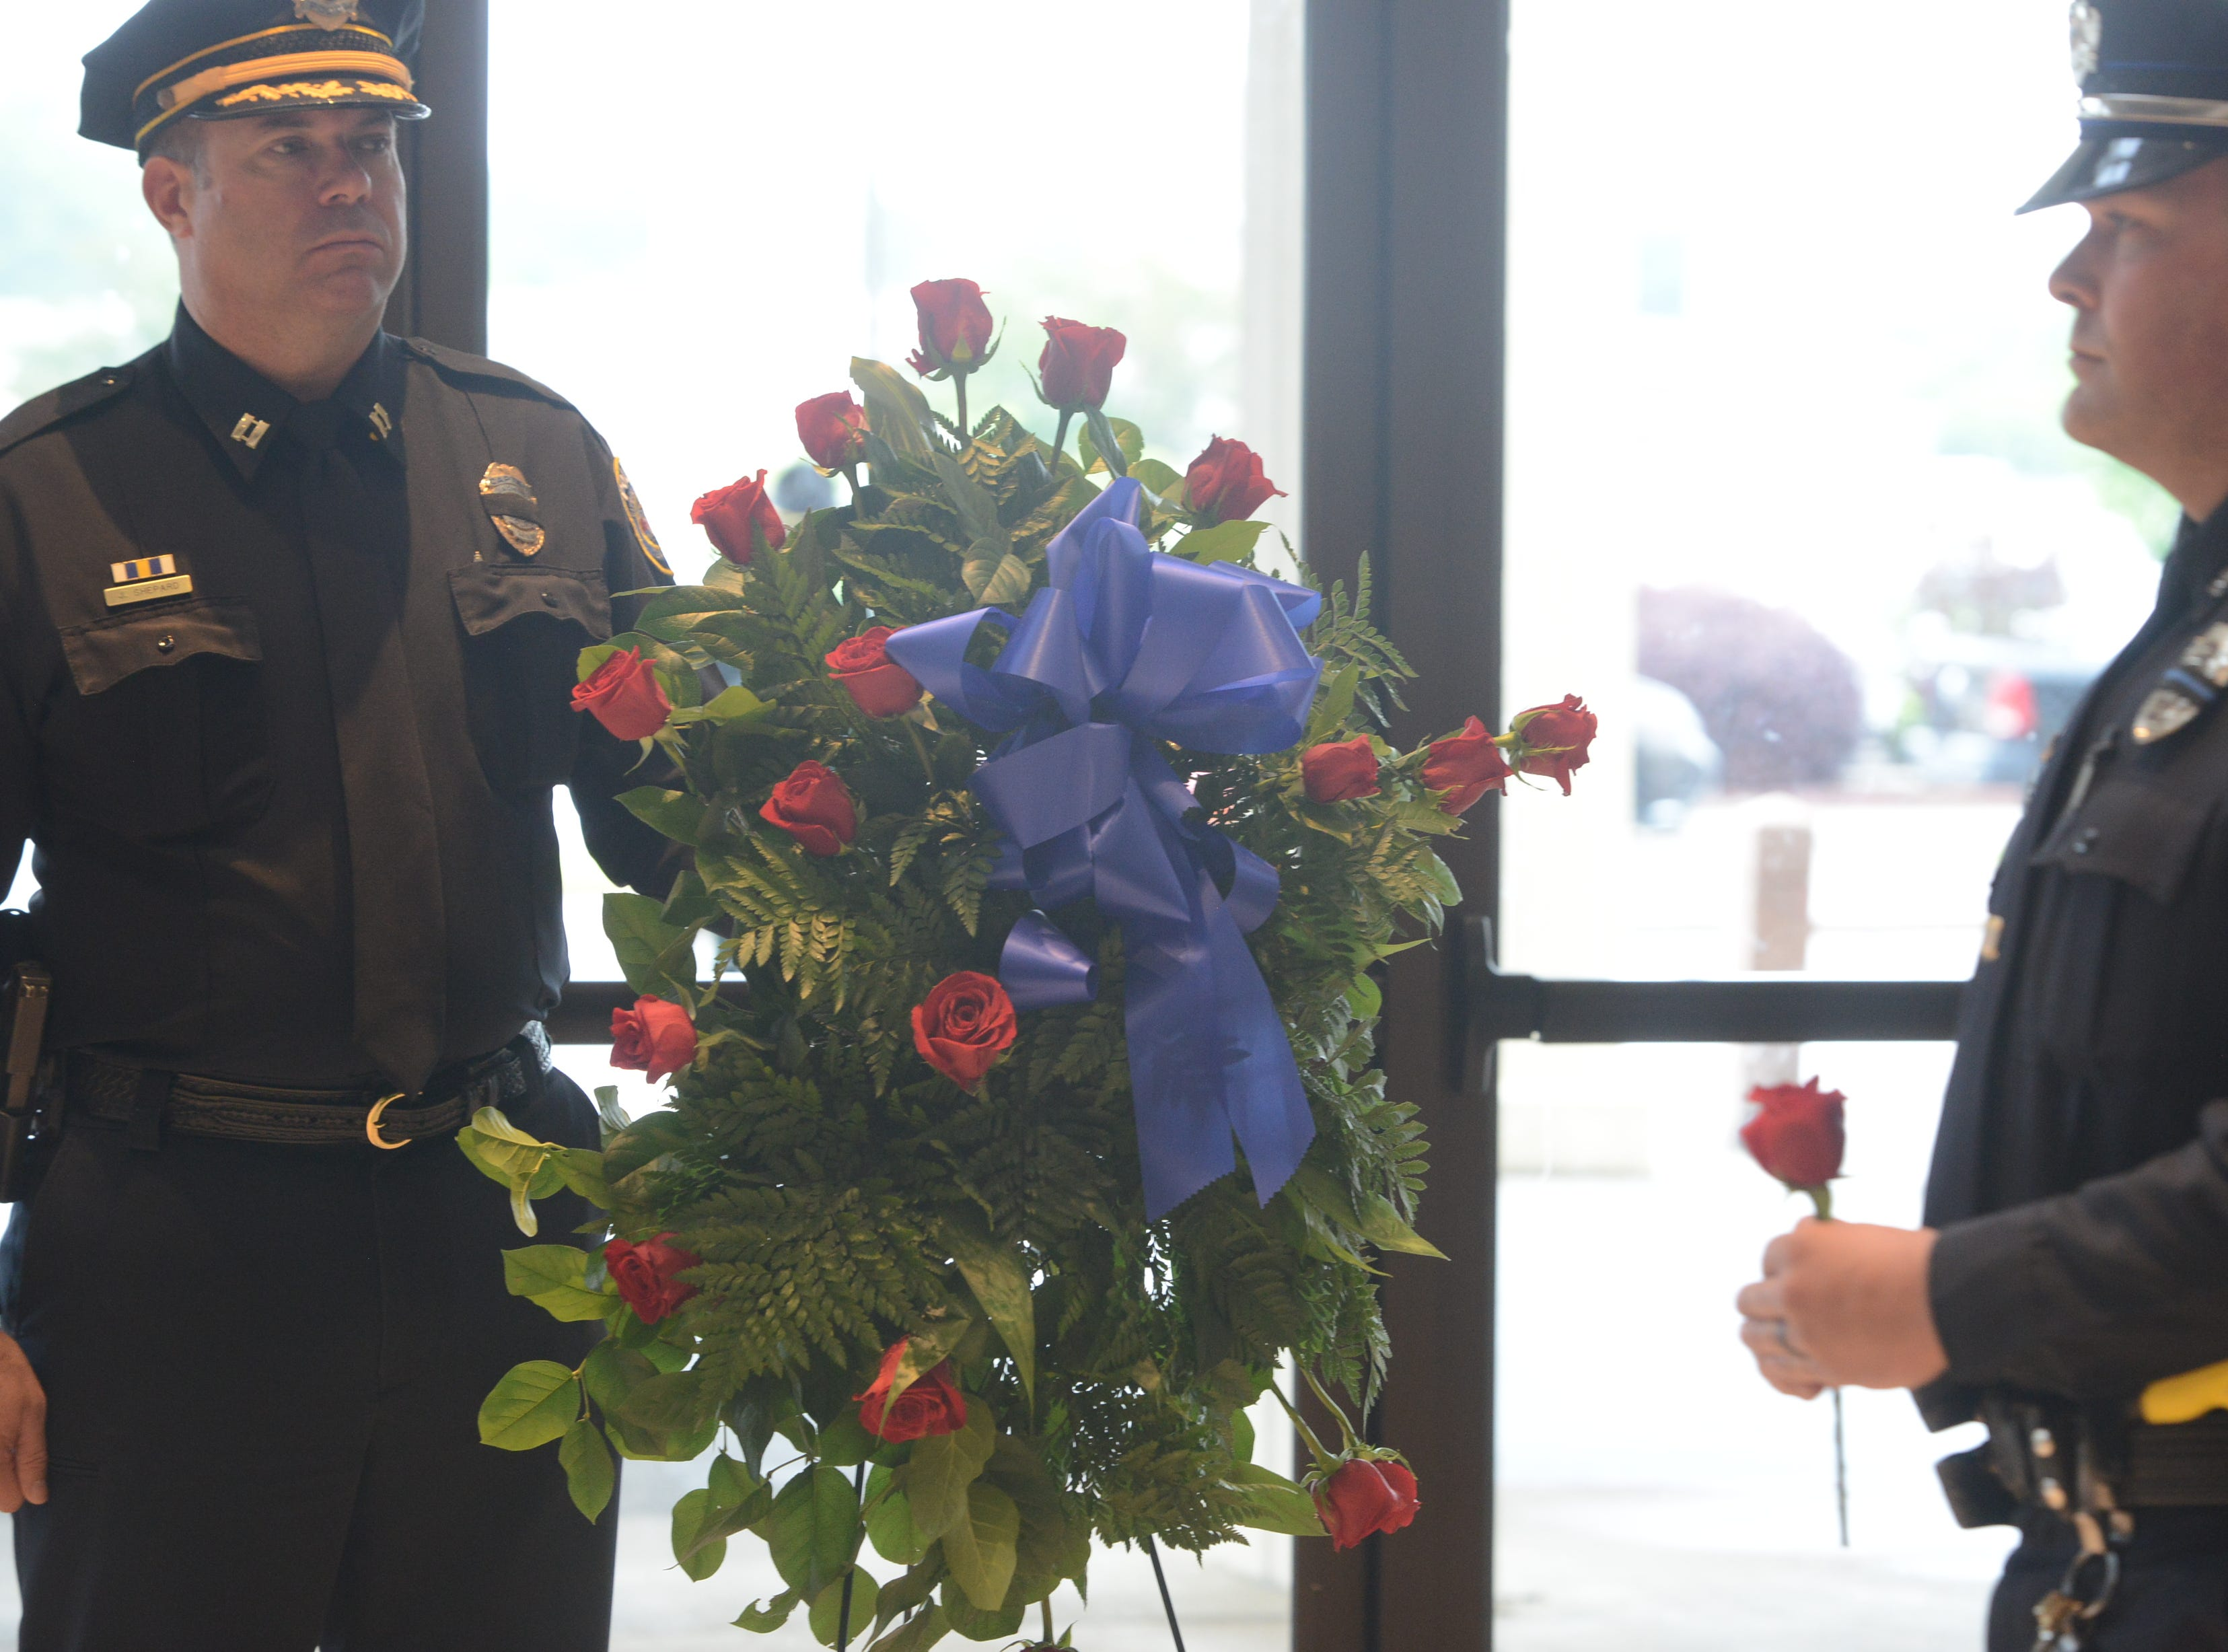 Jackson Police Department Captain Jeff Shepard stands at attention as fellow officers place roses in a wreath in memory of fallen public servants at the National Law Enforcement Memorial Service at the Carl Perkins Civic Center in Jackson on Wednesday, May 15, 2019.